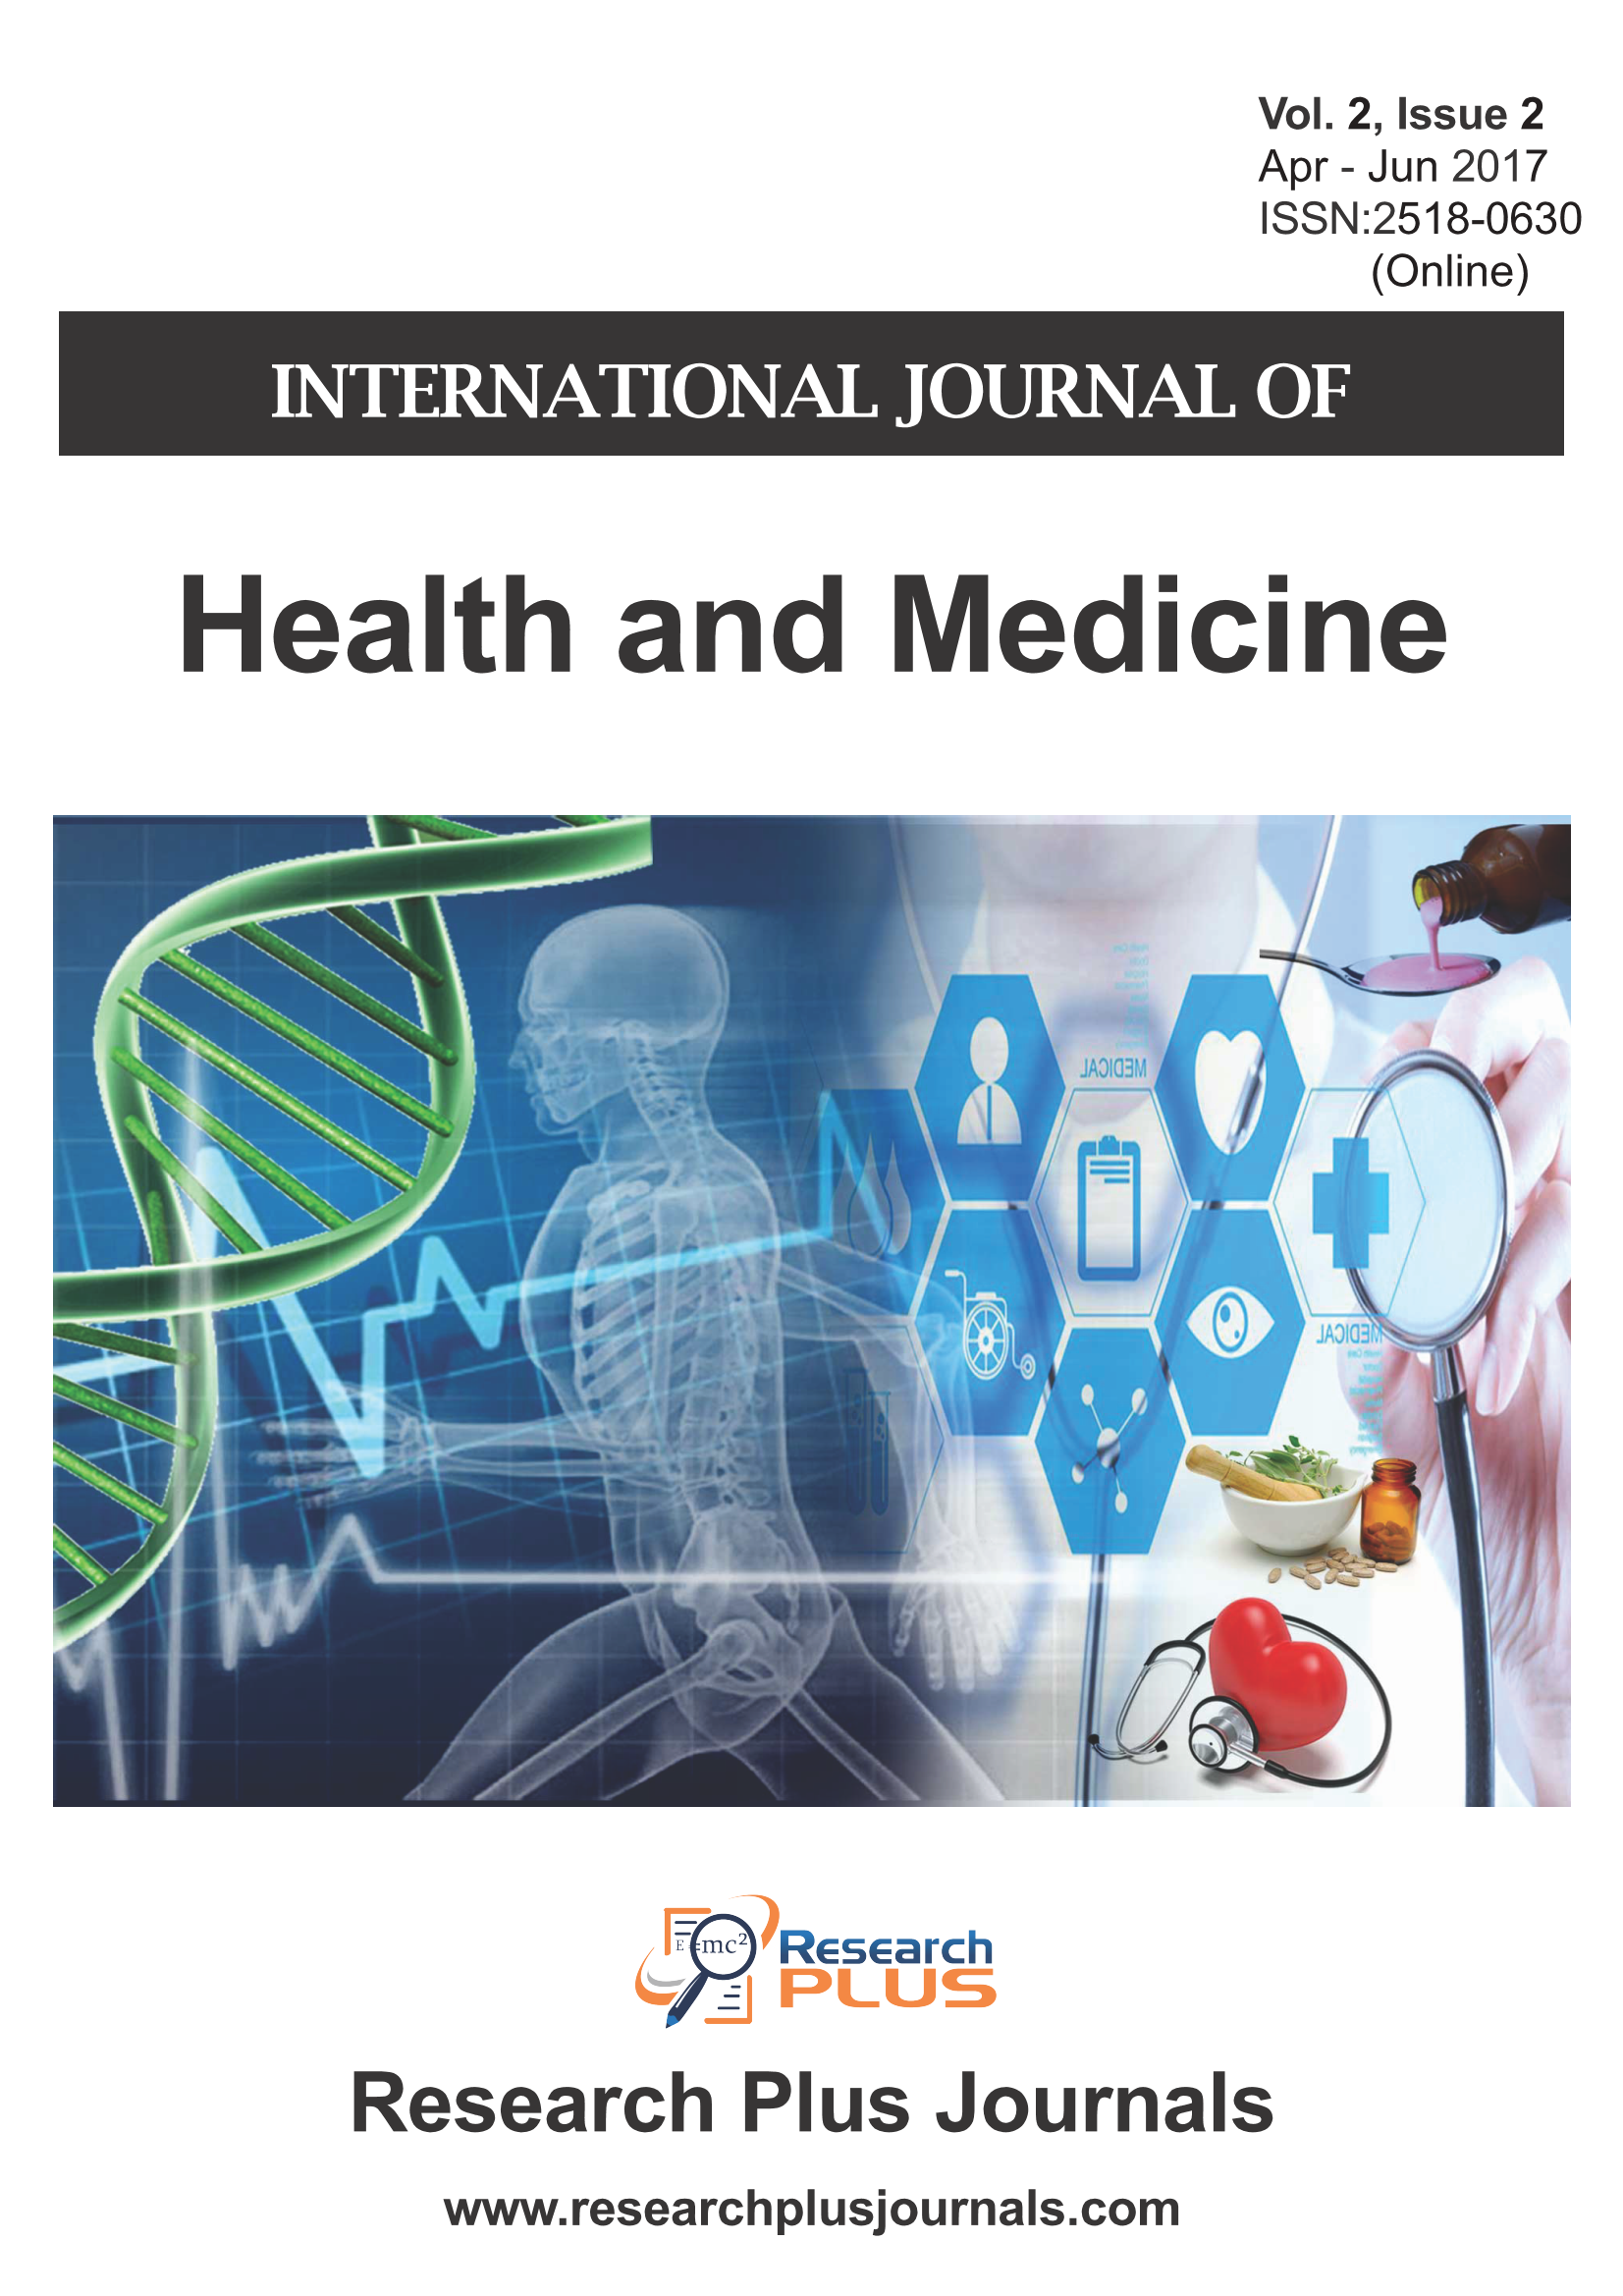 International Journal of Health and Medicine (ISSN Online: 2518-0630)